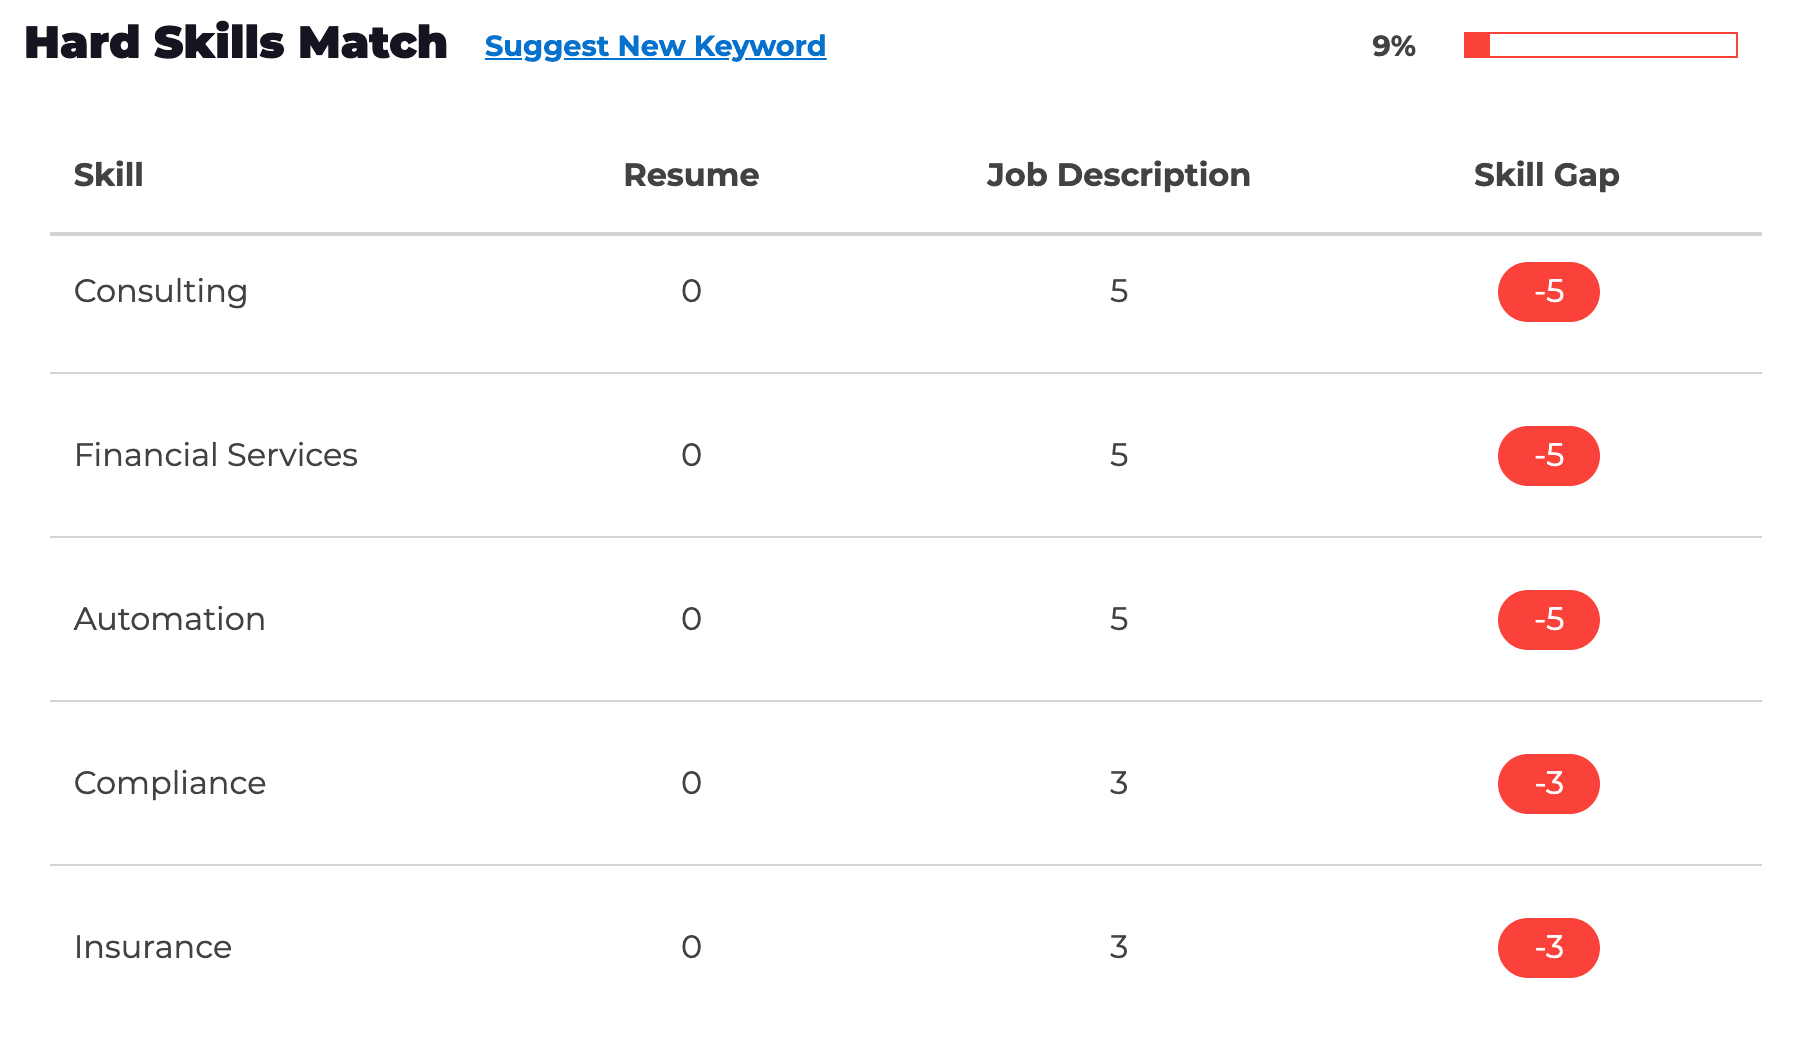 ResyMatch.io Results For Interview Hard Skills And Soft Skills